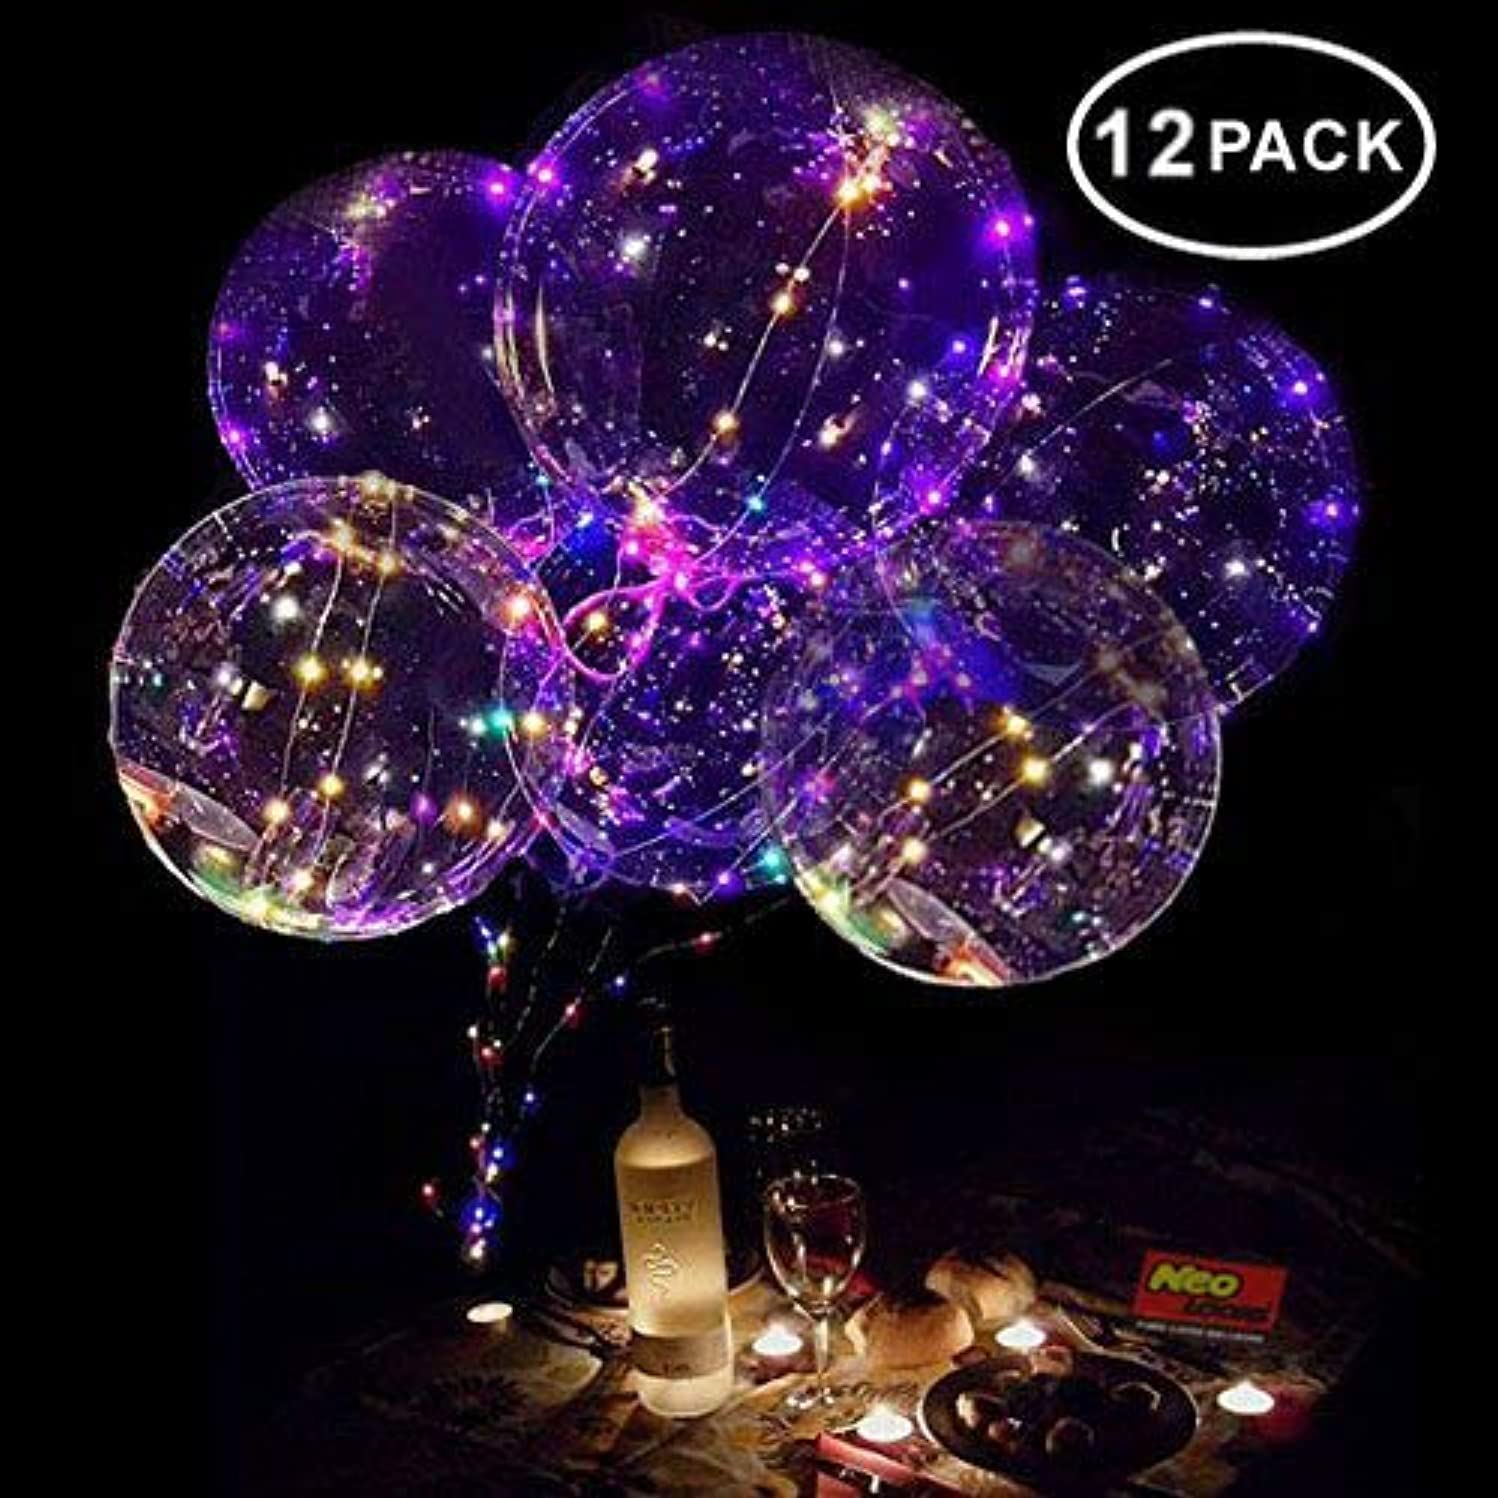 Neo LOONS 18 Inch LED Light Up Balloons LED Bobo Balloons Helium Balloons for Birthday,Wedding,Christmas Party Decorations,12 Pcs